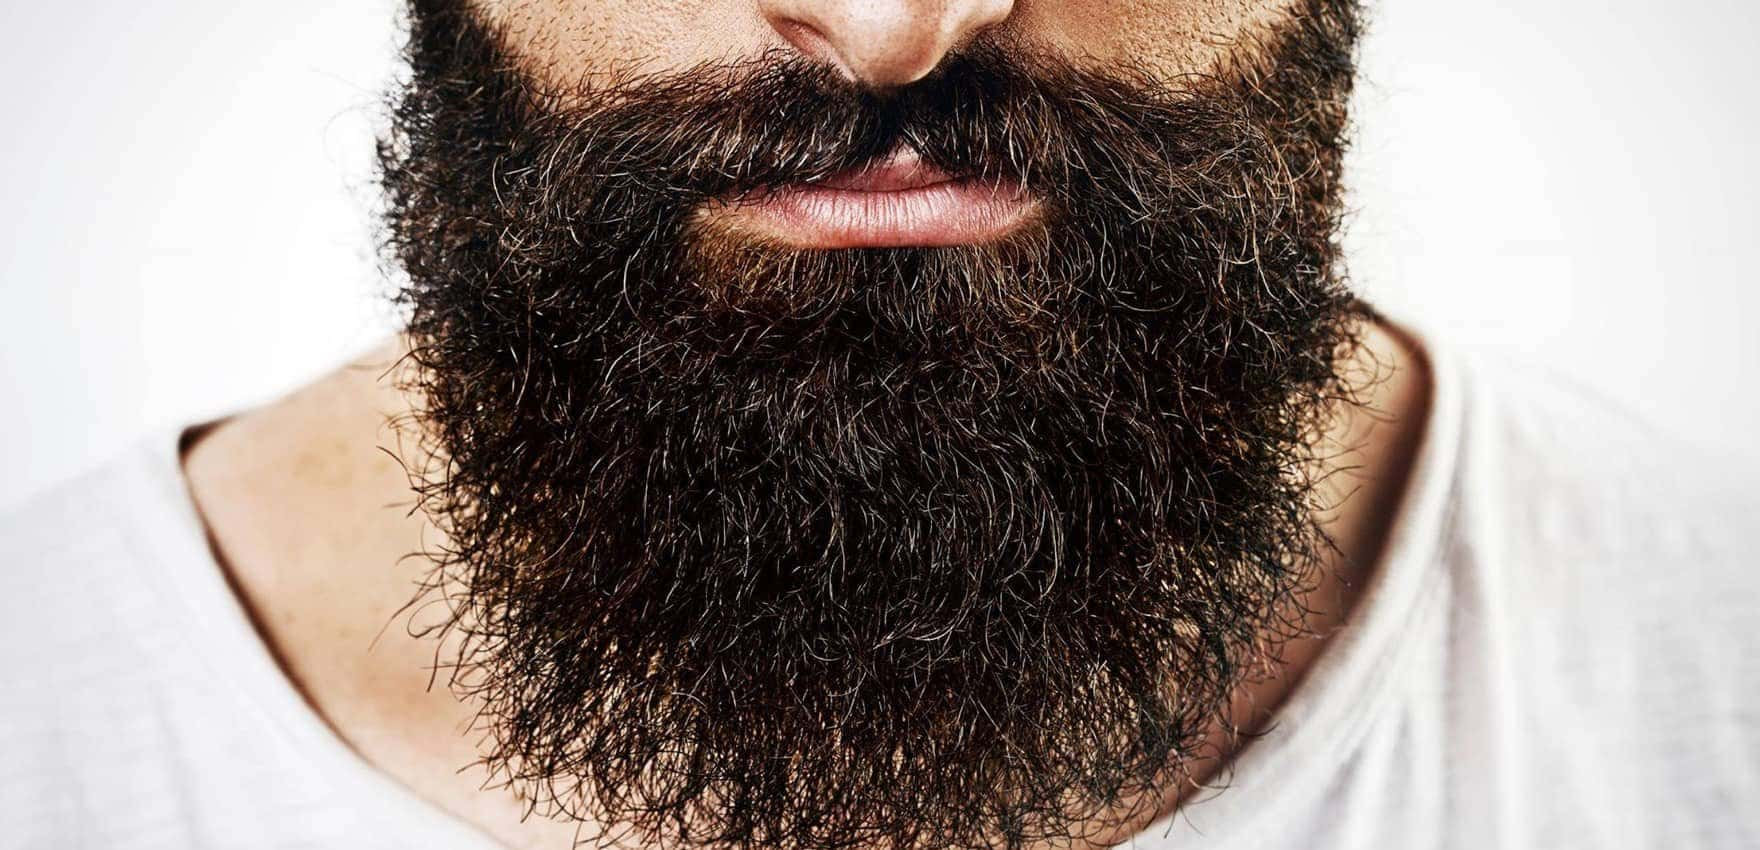 10 things to know before you grow a beard!